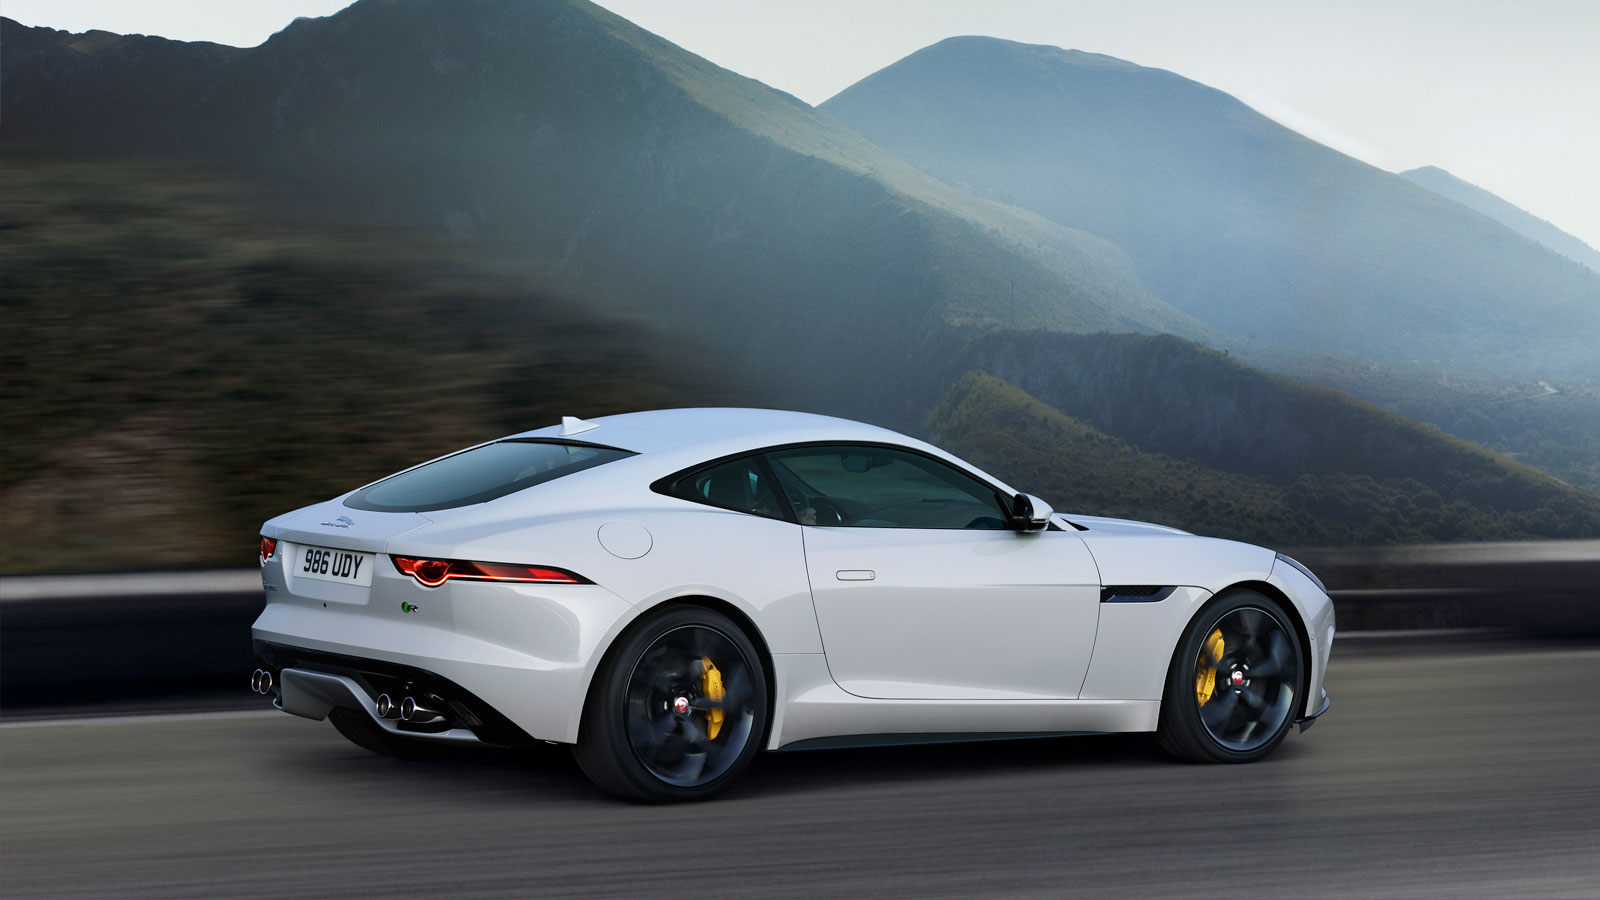 Jaguar F-TYPE 3.0 (380) S/C V6 Chequered Flag AWD SPECIAL EDITIONS image 4